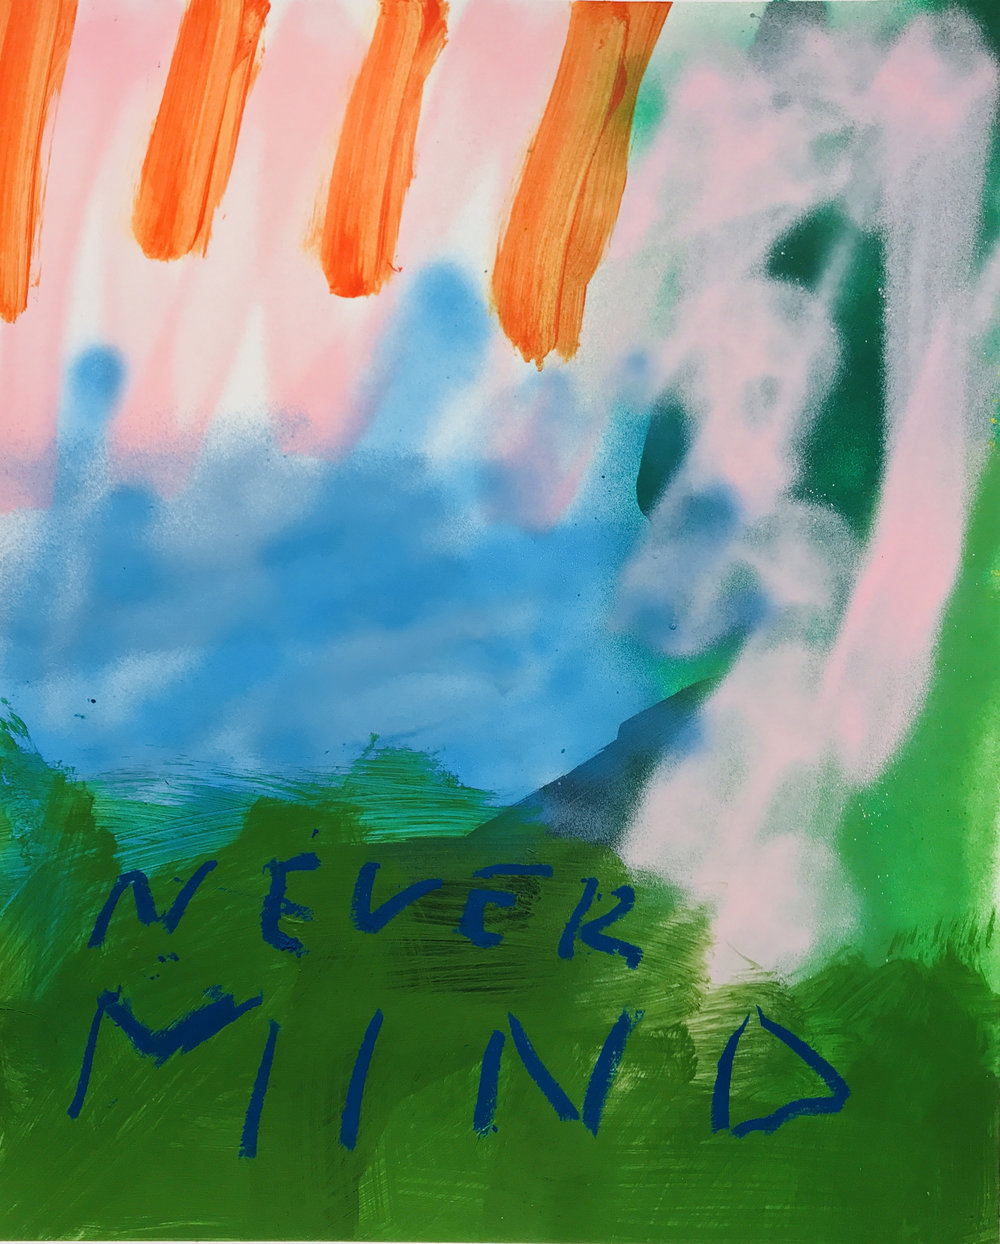 Never Mind, 2018 Acrylic and spray paint on paper, 24 x 18 inches.